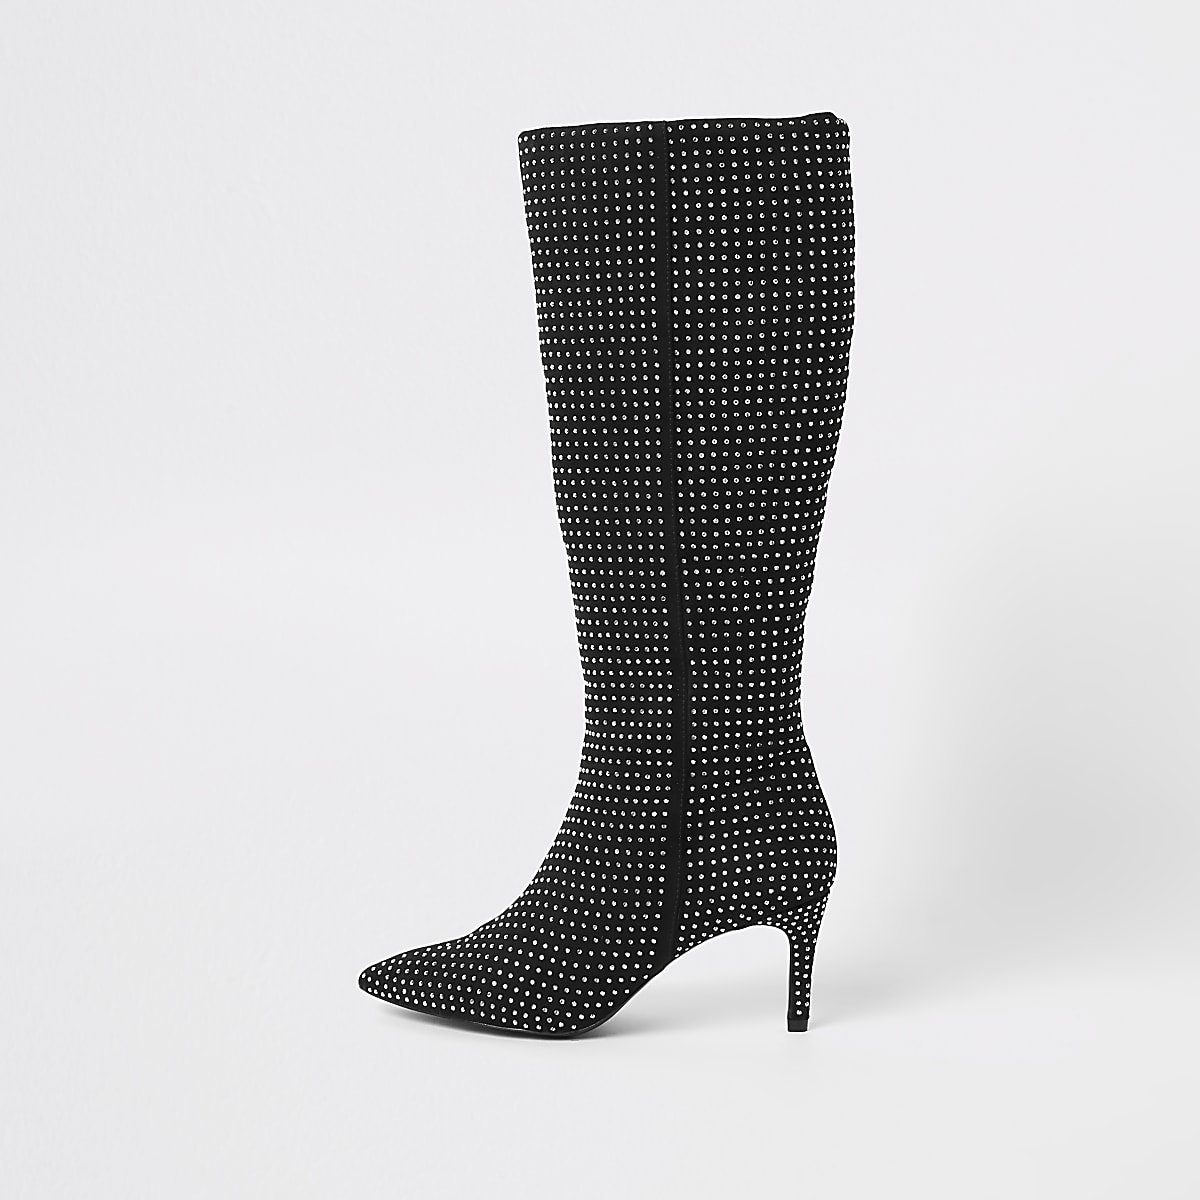 139b093e642 Black diamante embellished knee high boots - Boots - Shoes   Boots - women